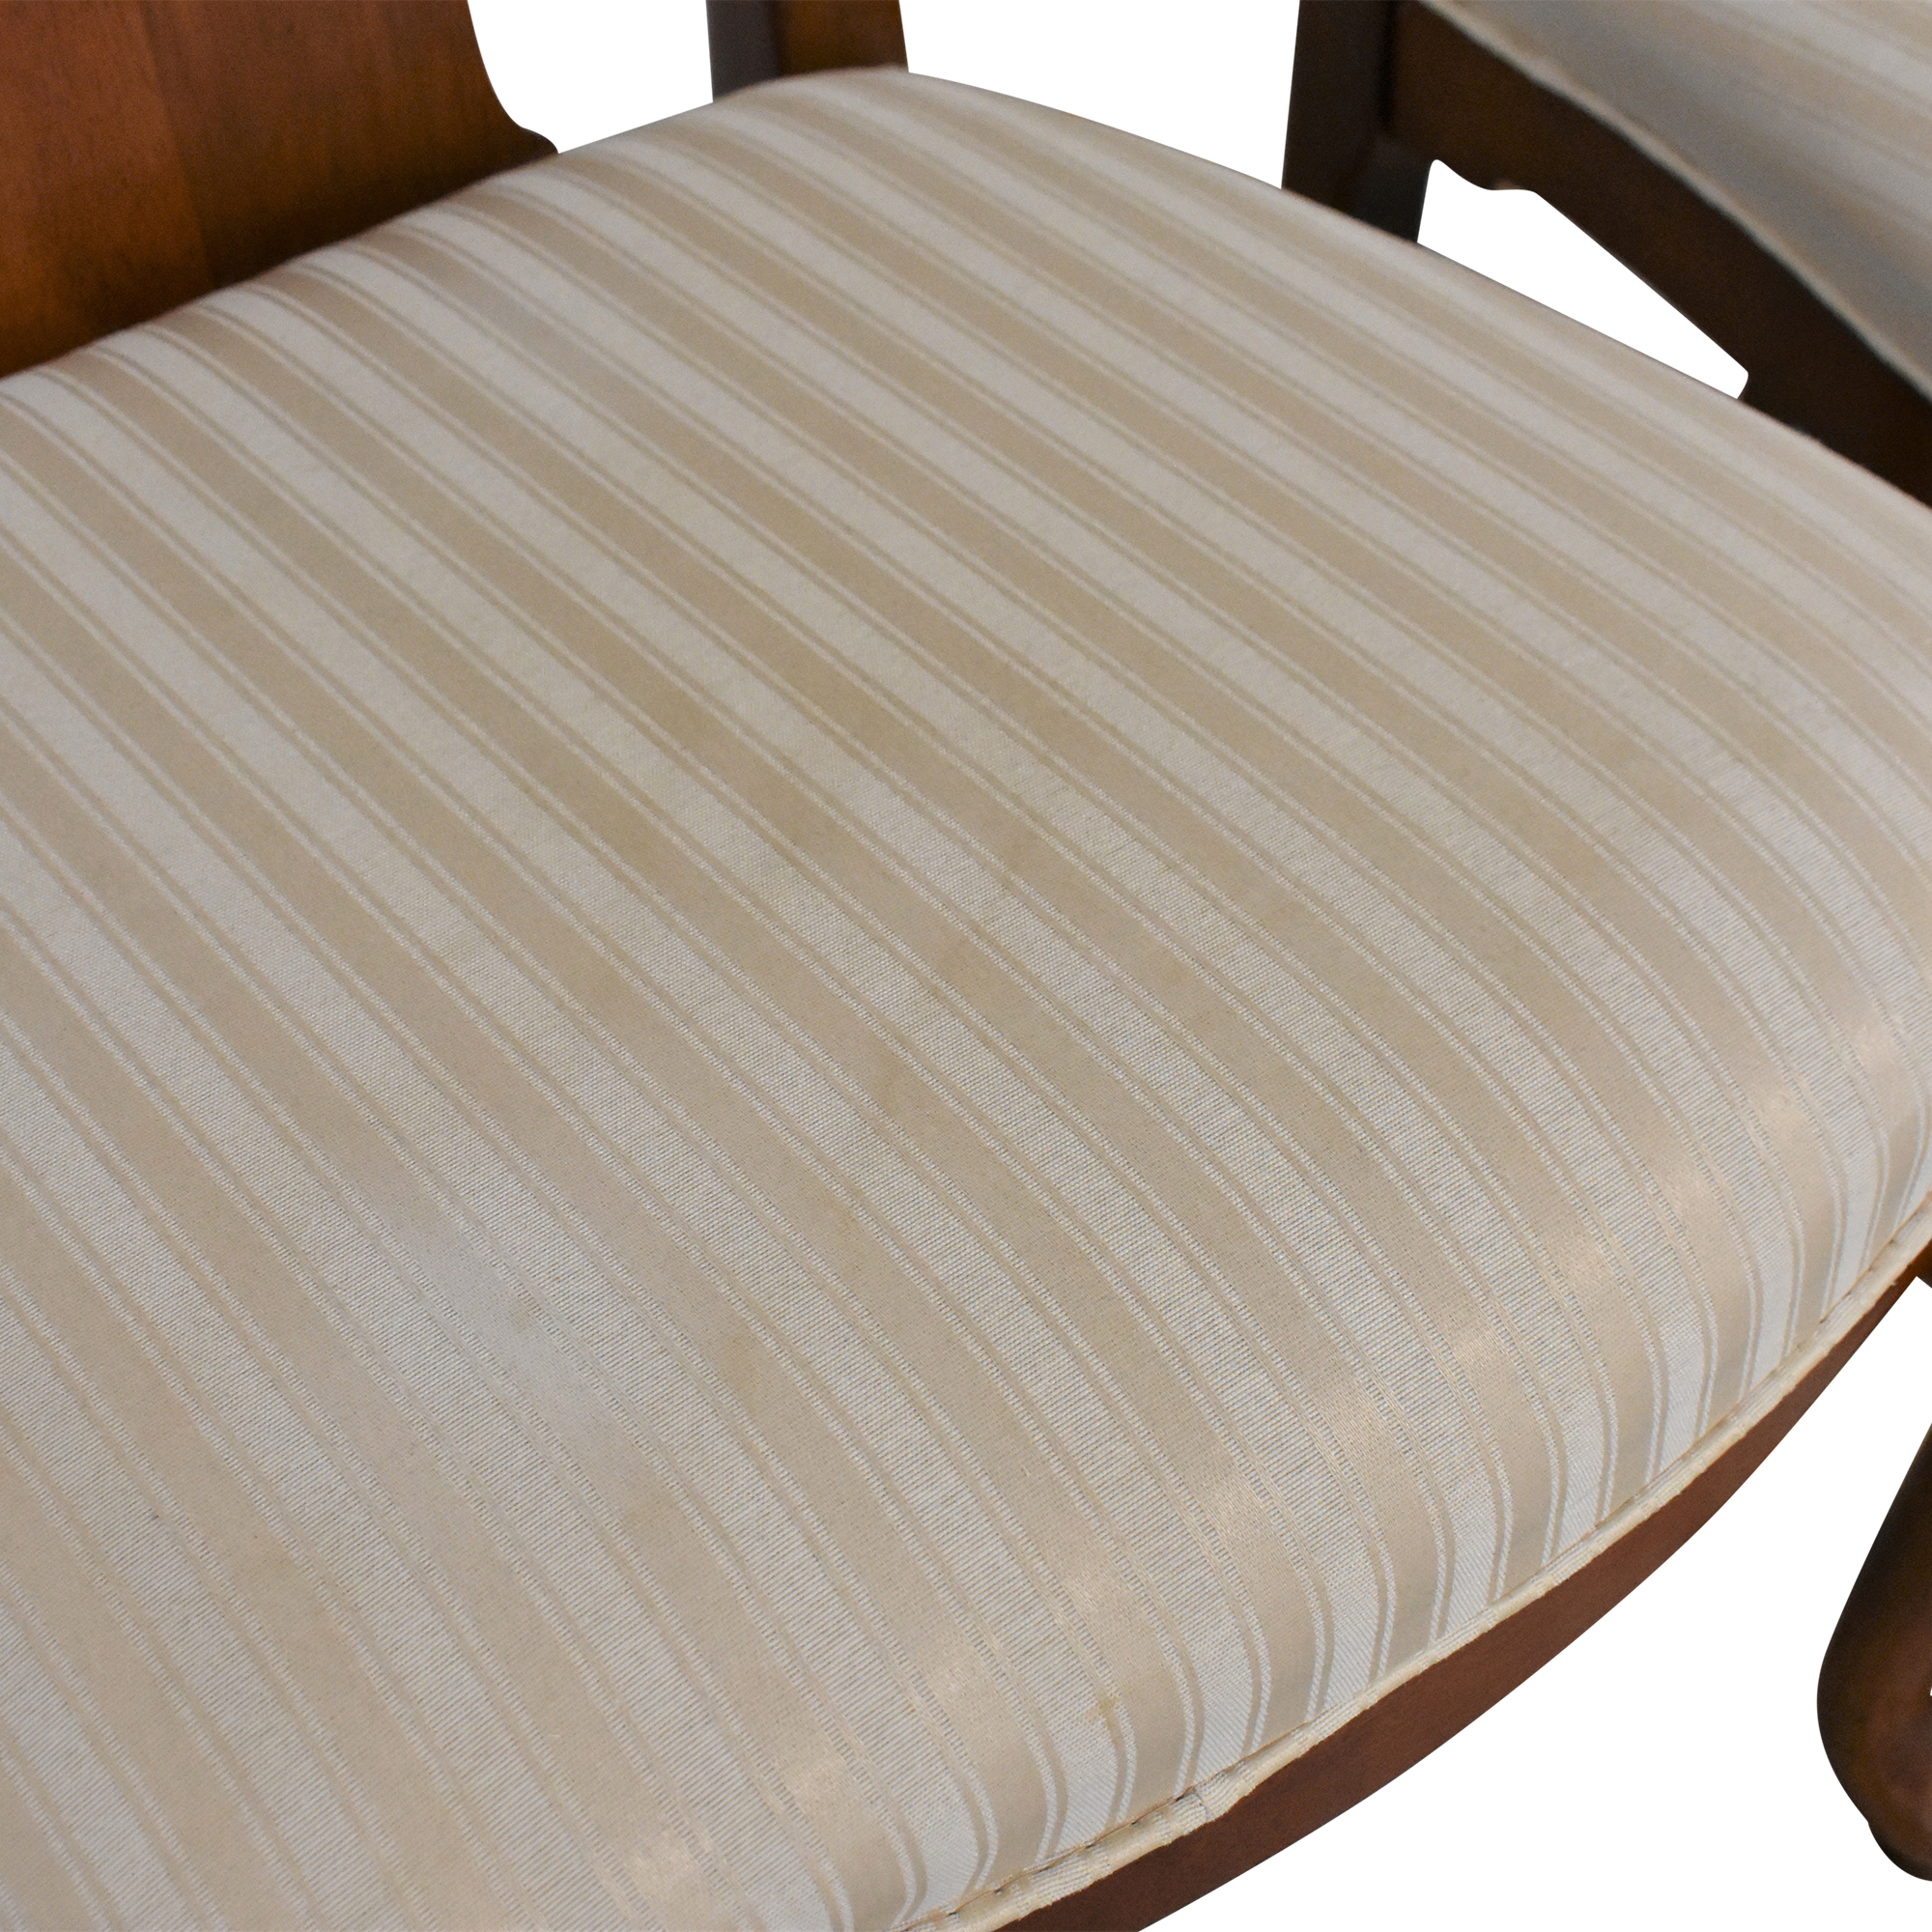 Universal Furniture Universal Furniture Upholstered Dining Chairs nj